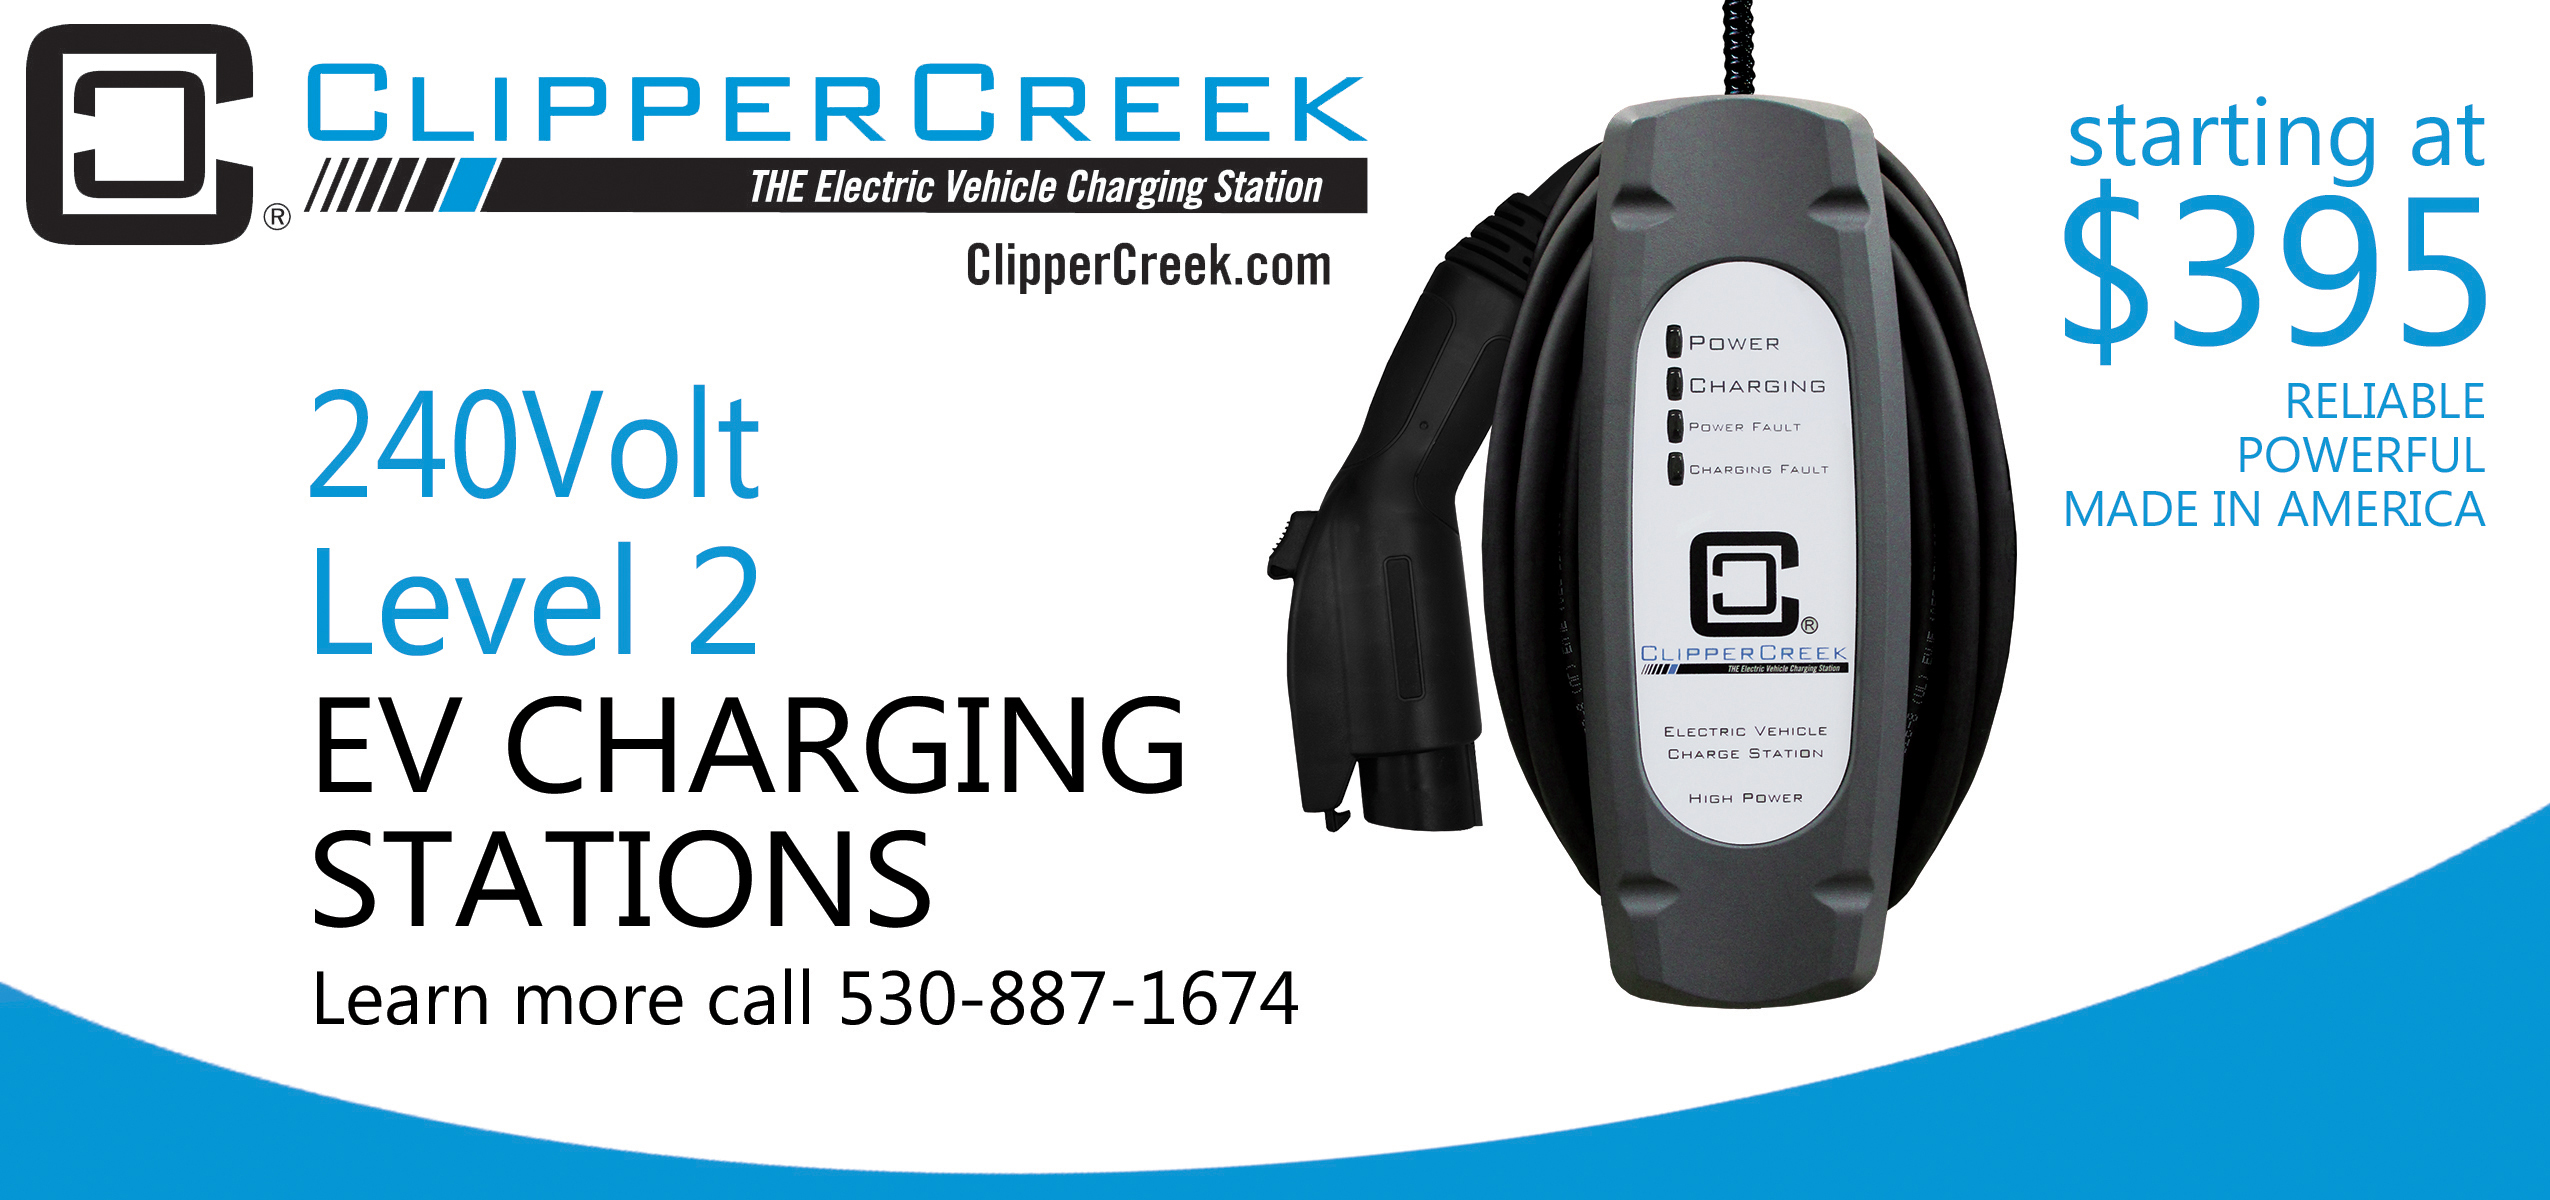 ClipperCreek's $395 Level 2, 240V EV charging station, available for immediate delivery, directly from the factory in Auburn, CA. (Graphic: Business Wire)